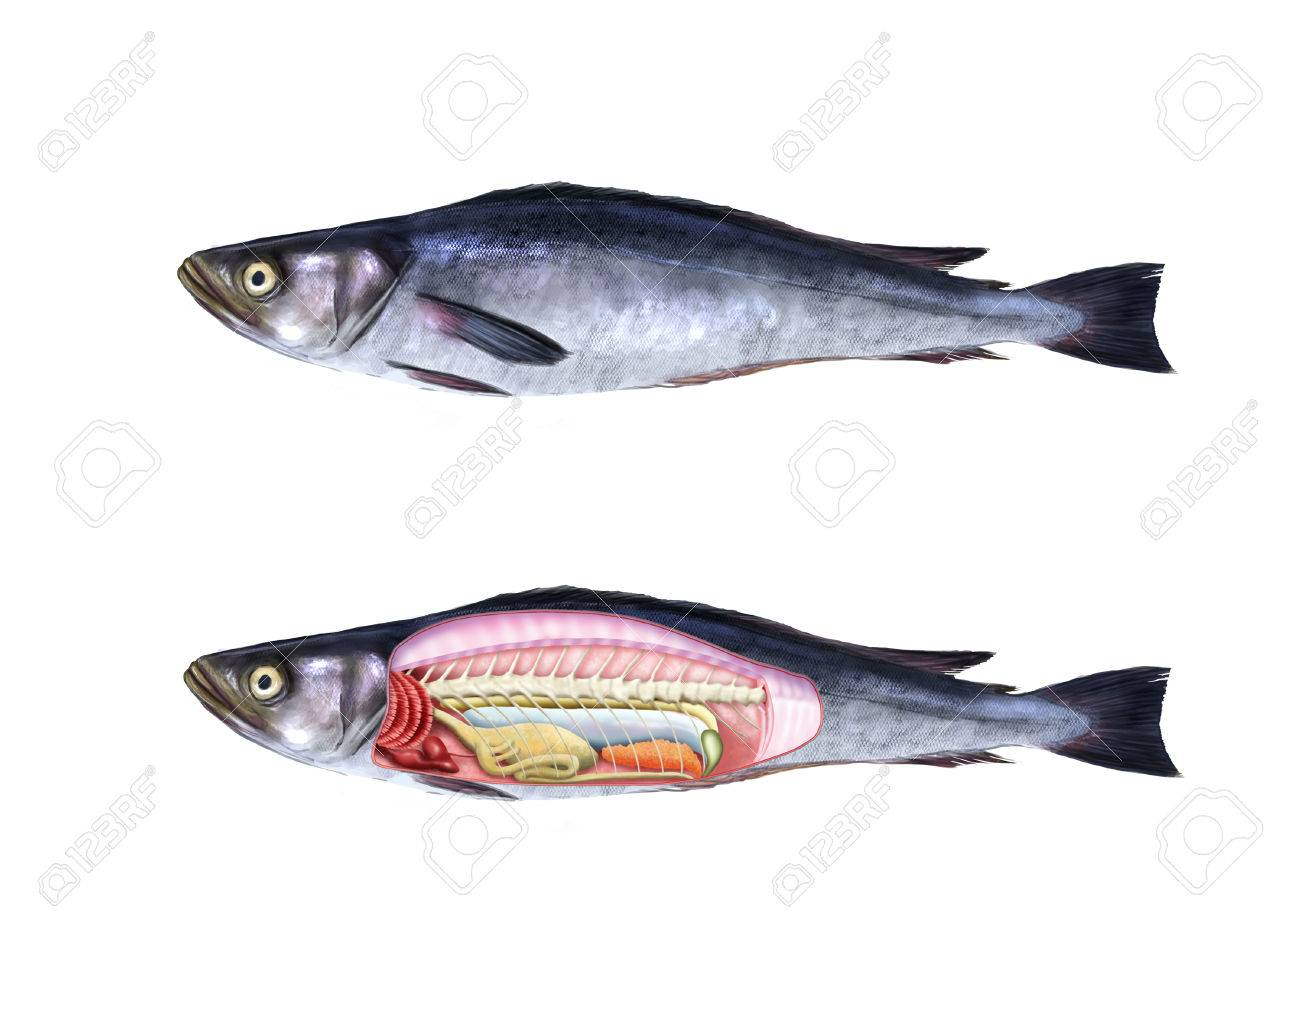 Digital Illustration Of The Anatomy Of A Fish Stock Photo, Picture ...